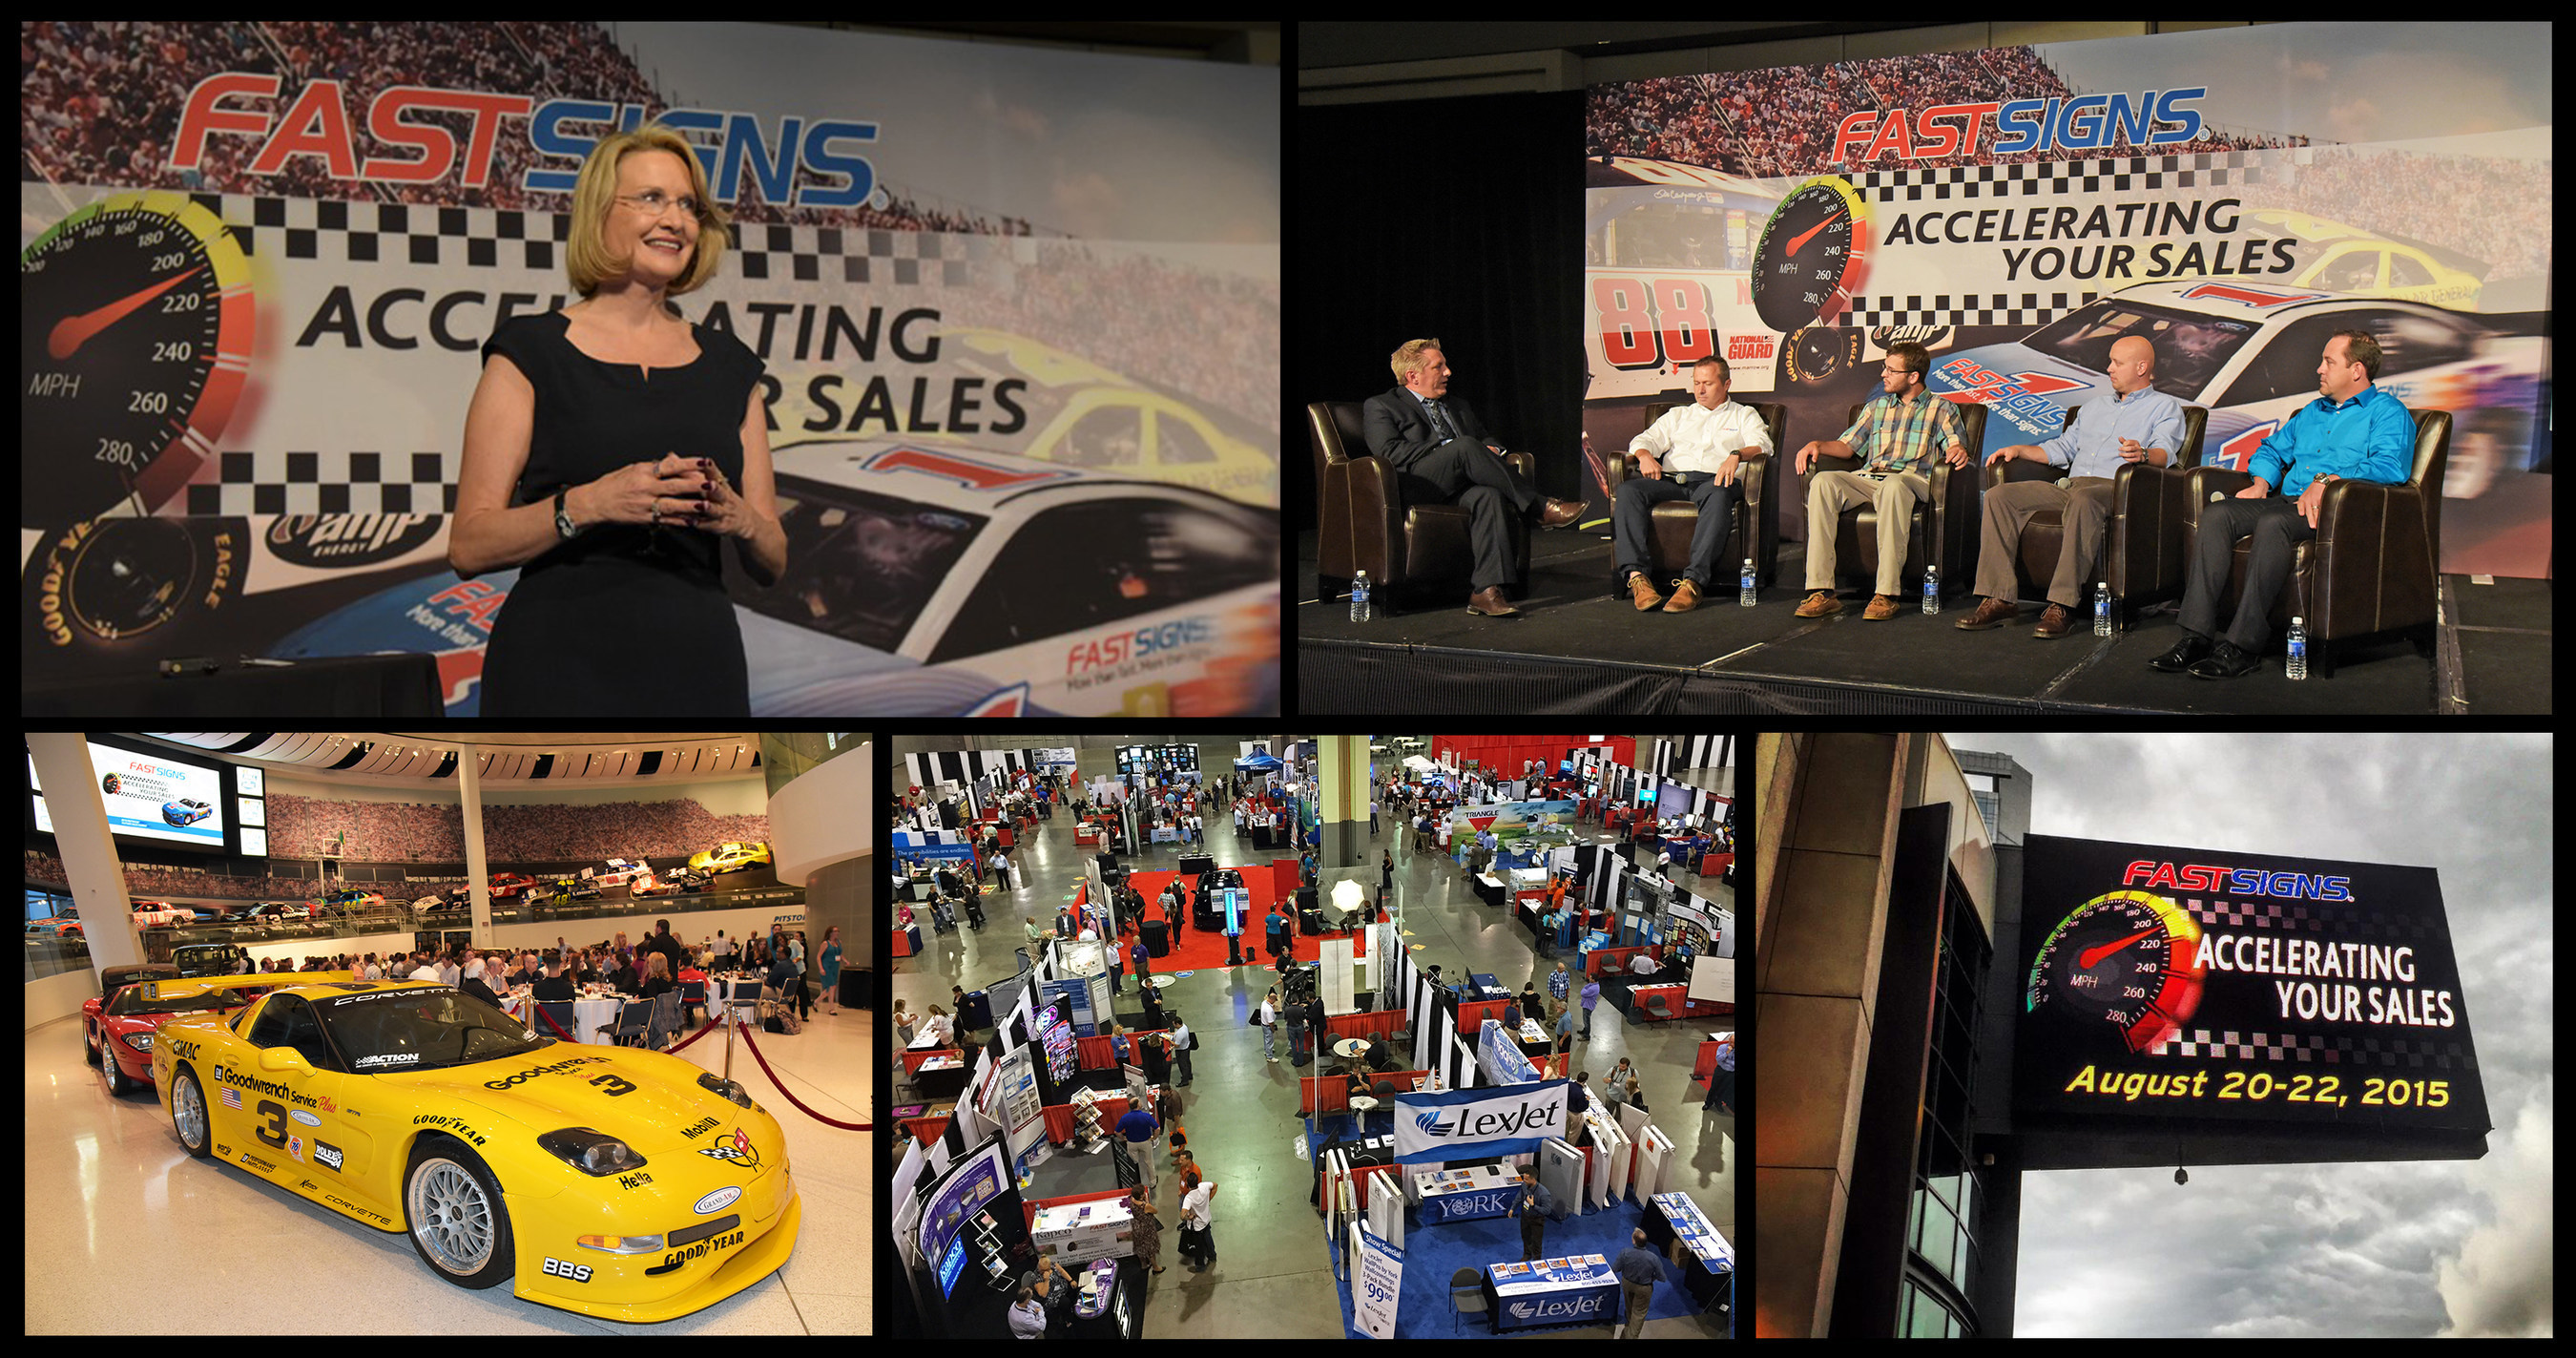 FASTSIGNS International, Inc. recently held its annual Outside Sales Summit in Charlotte, North Carolina.